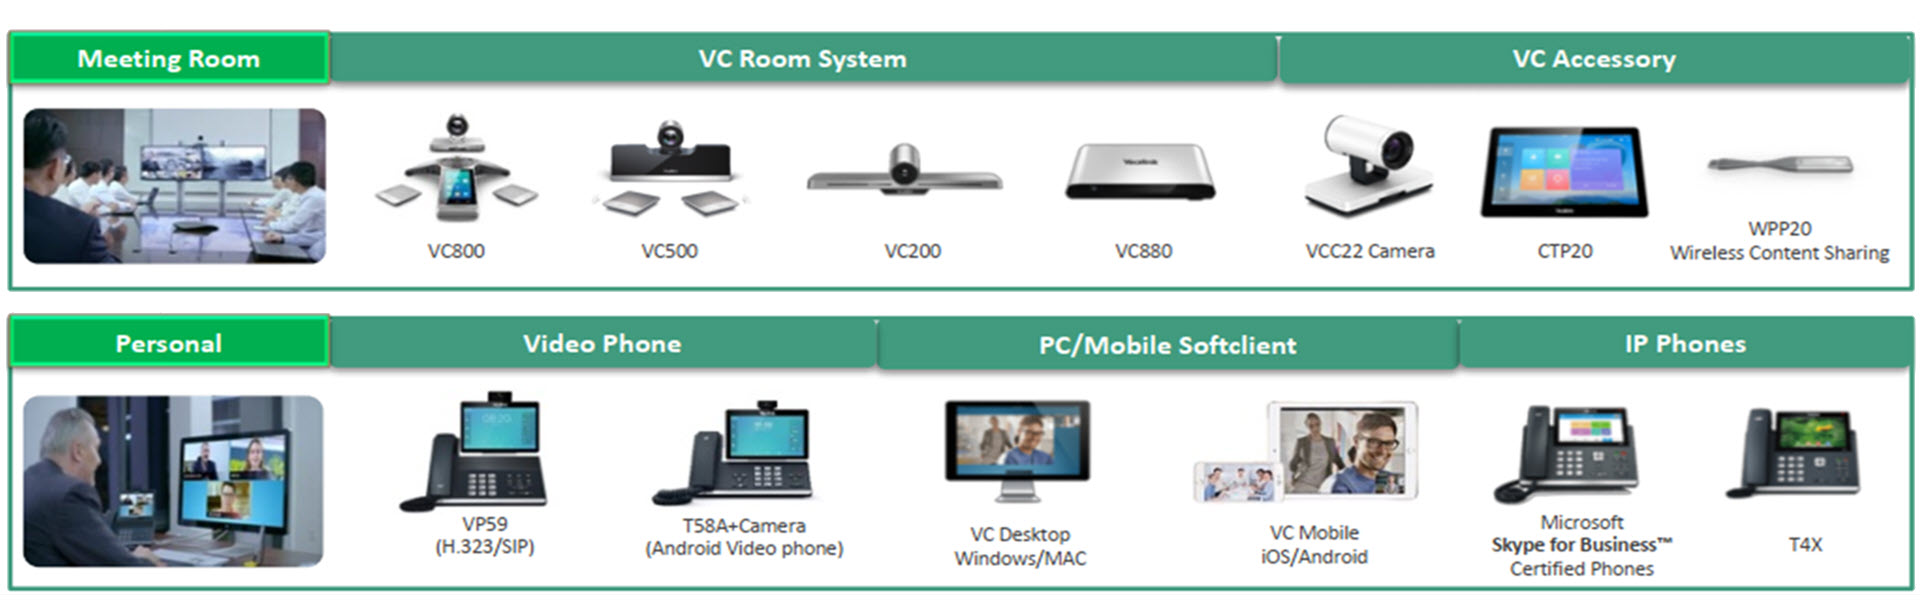 Yealink Products